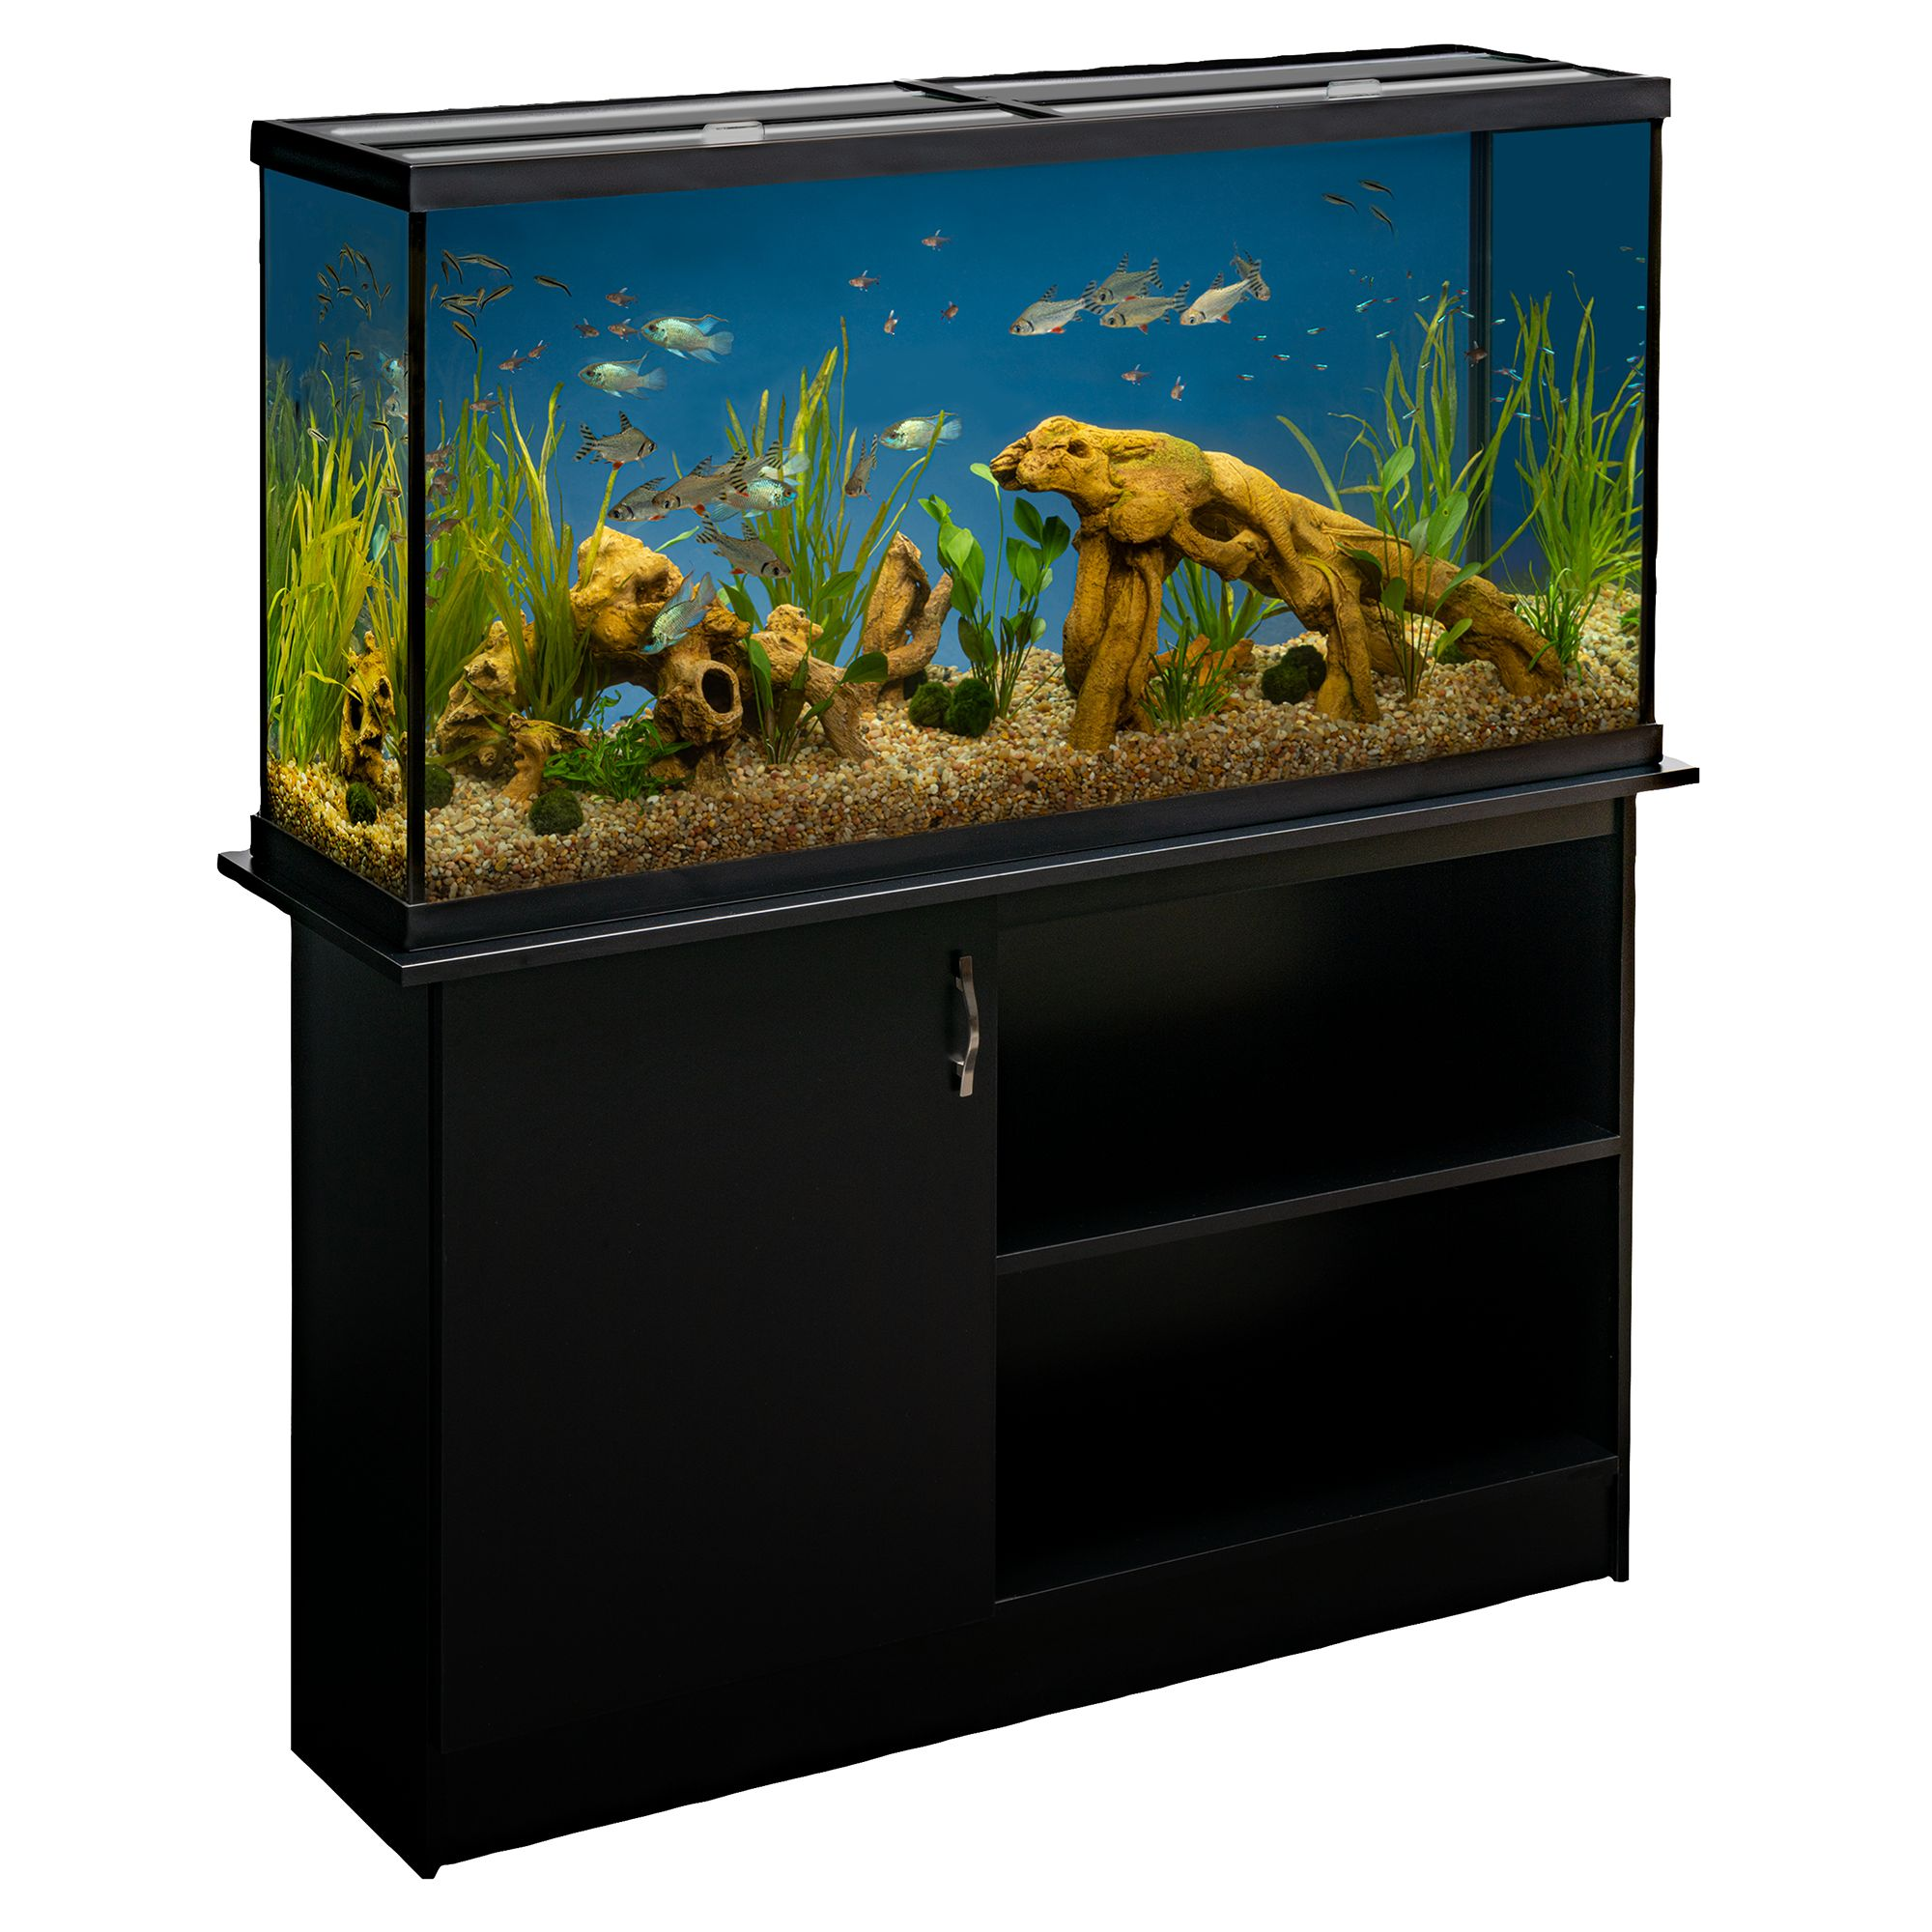 Fish aquarium in janakpuri - Aquariums